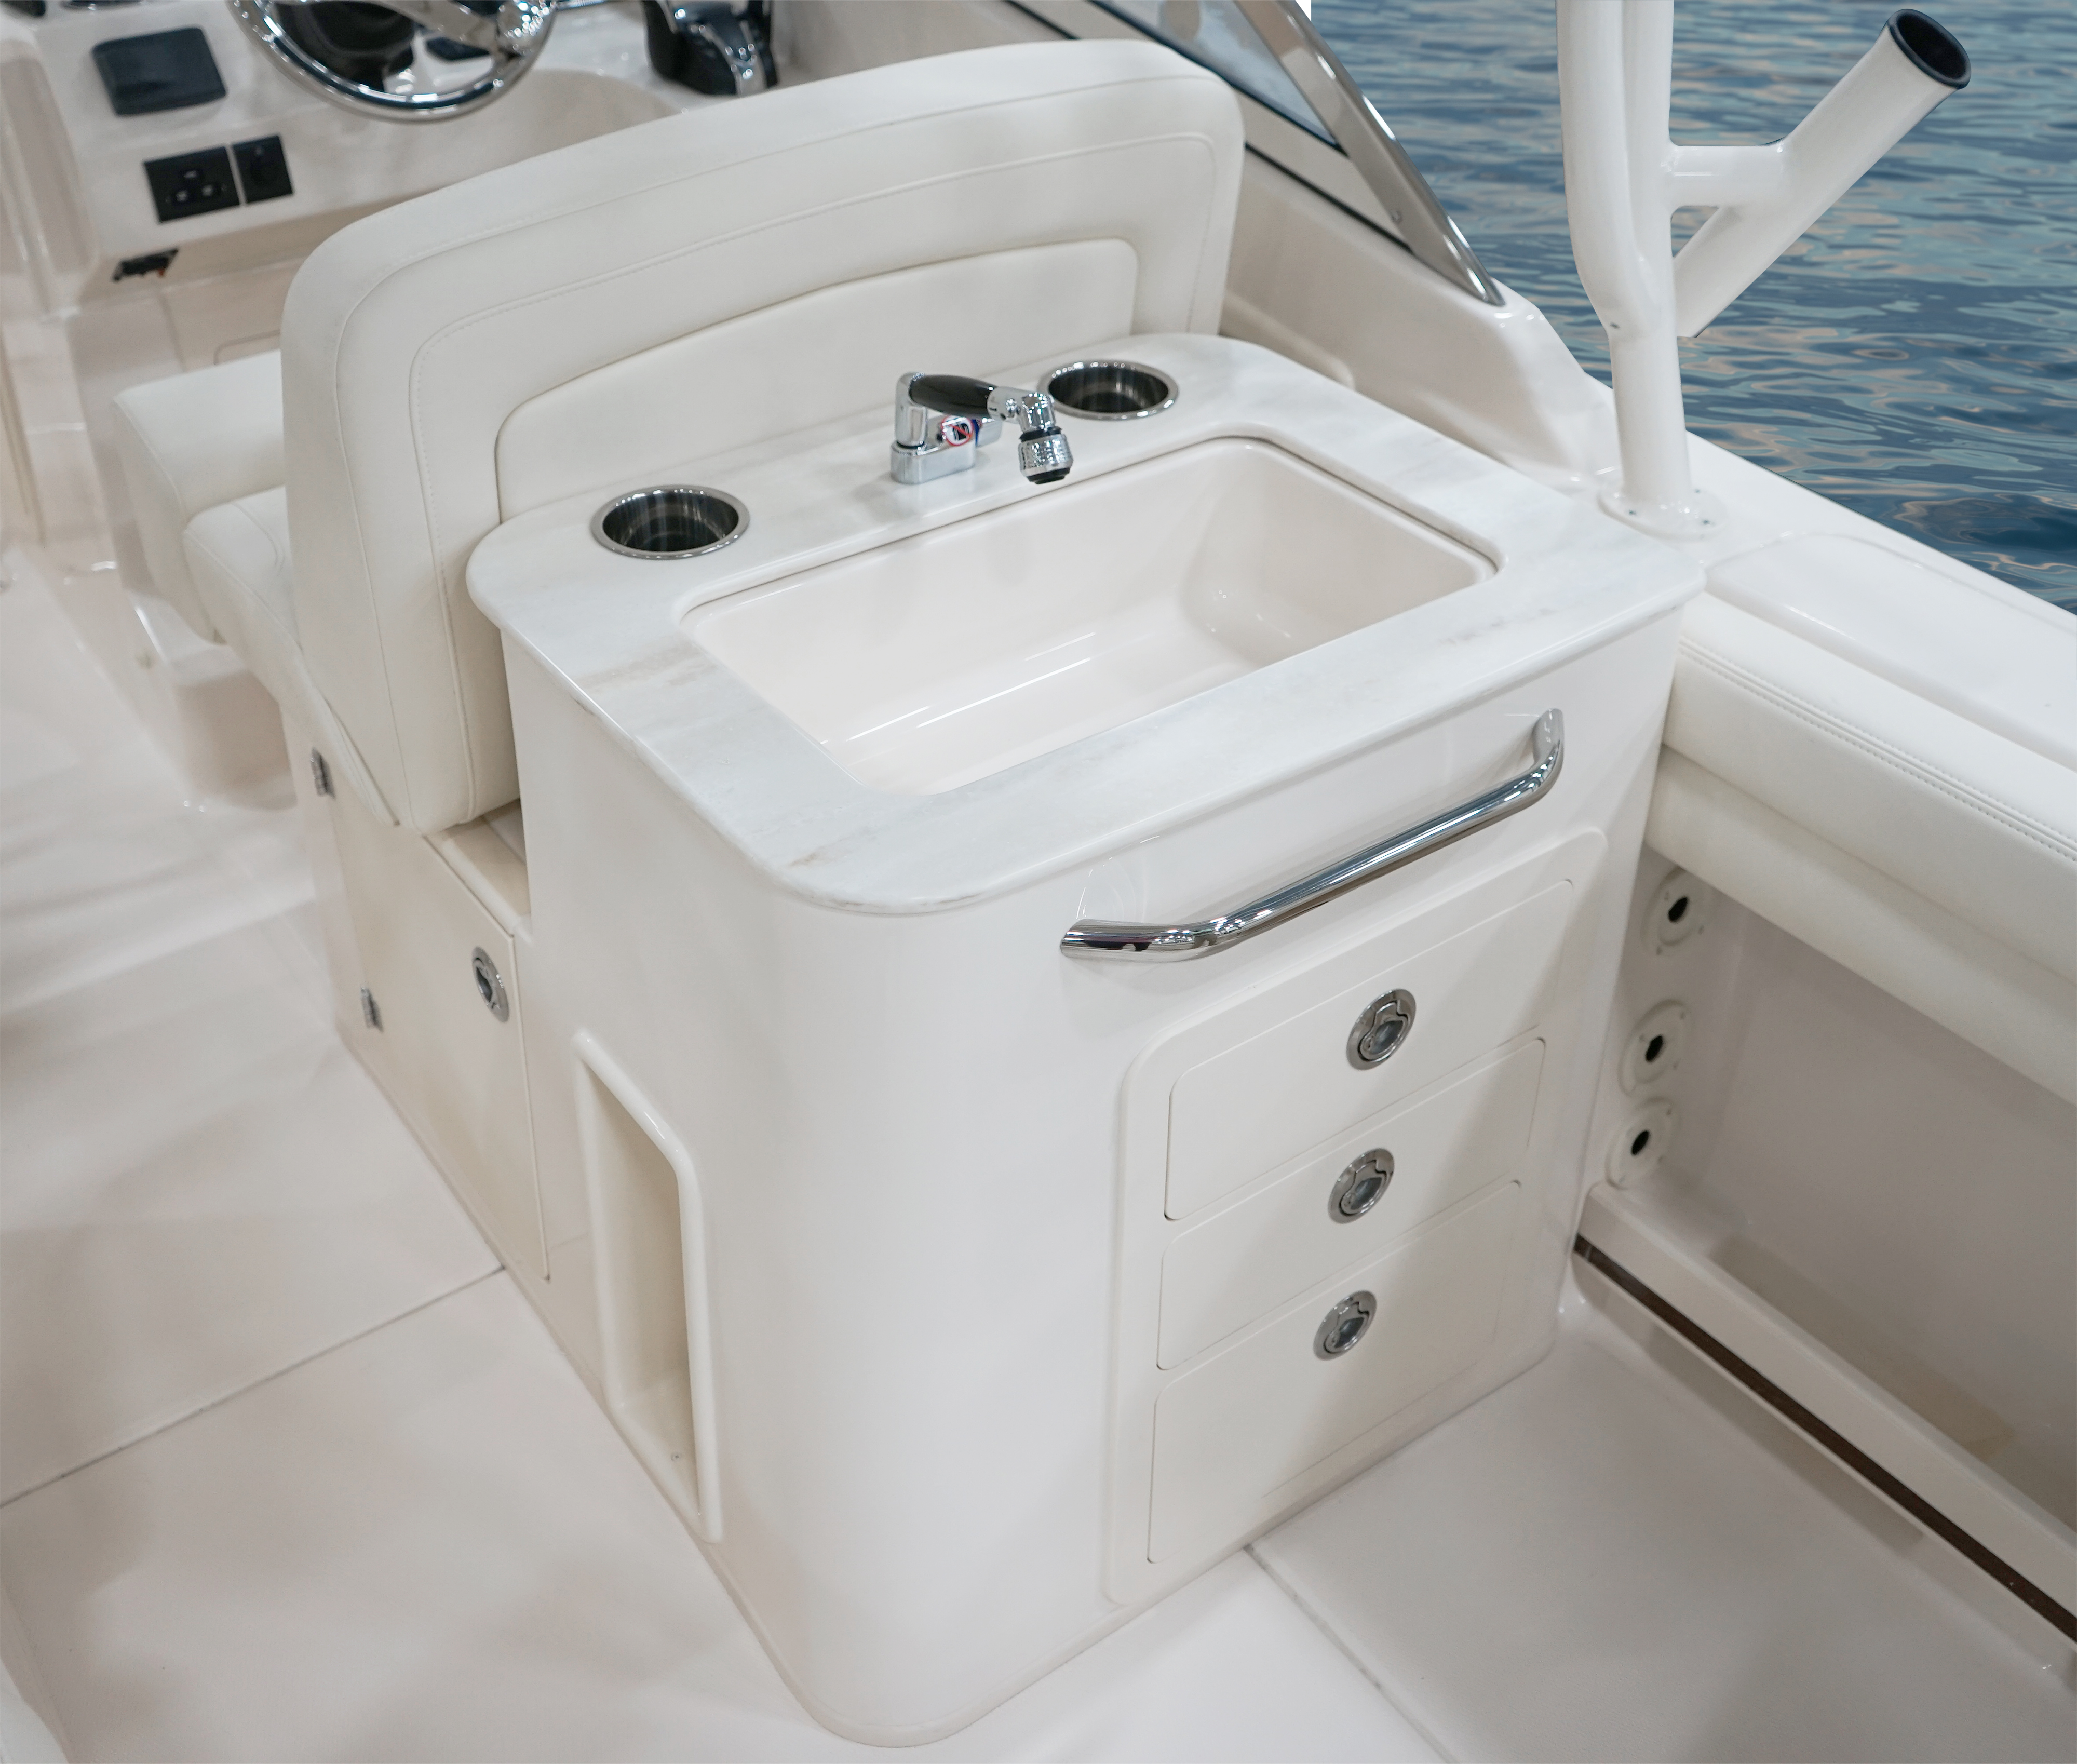 Grady-White Freedom 275 dual console 27 foot deluxe wet bar with sink, grab bar, and storage